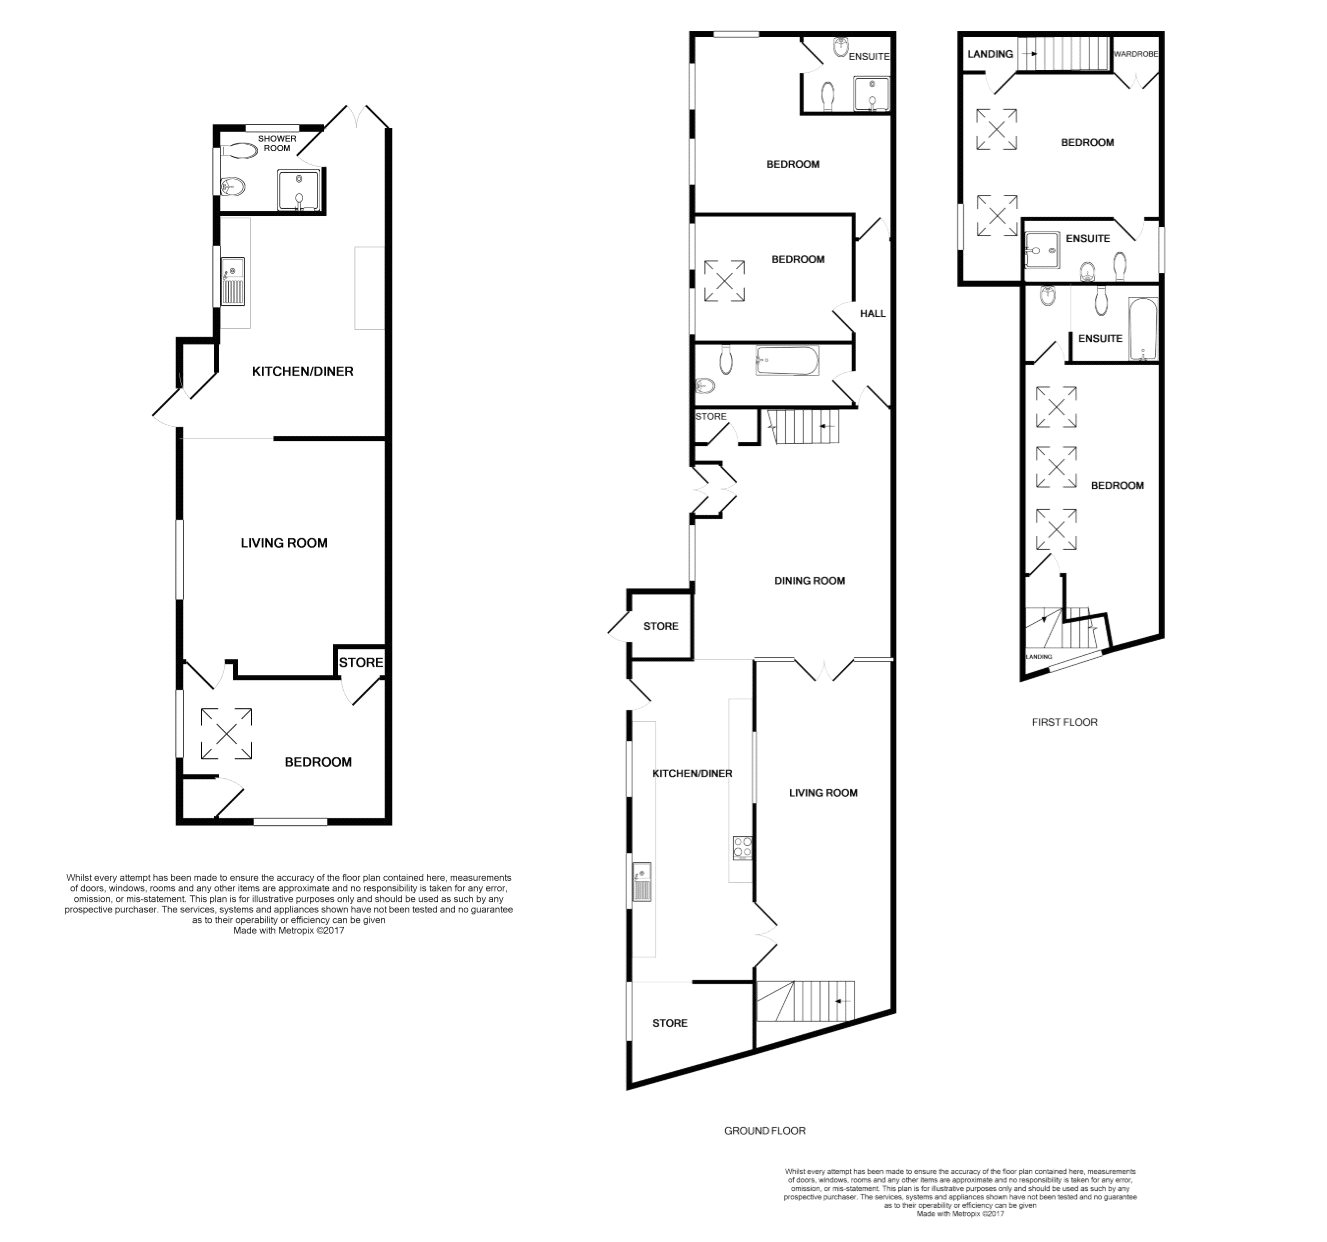 Floorplan of 4 bedroom Barn Conversion for sale